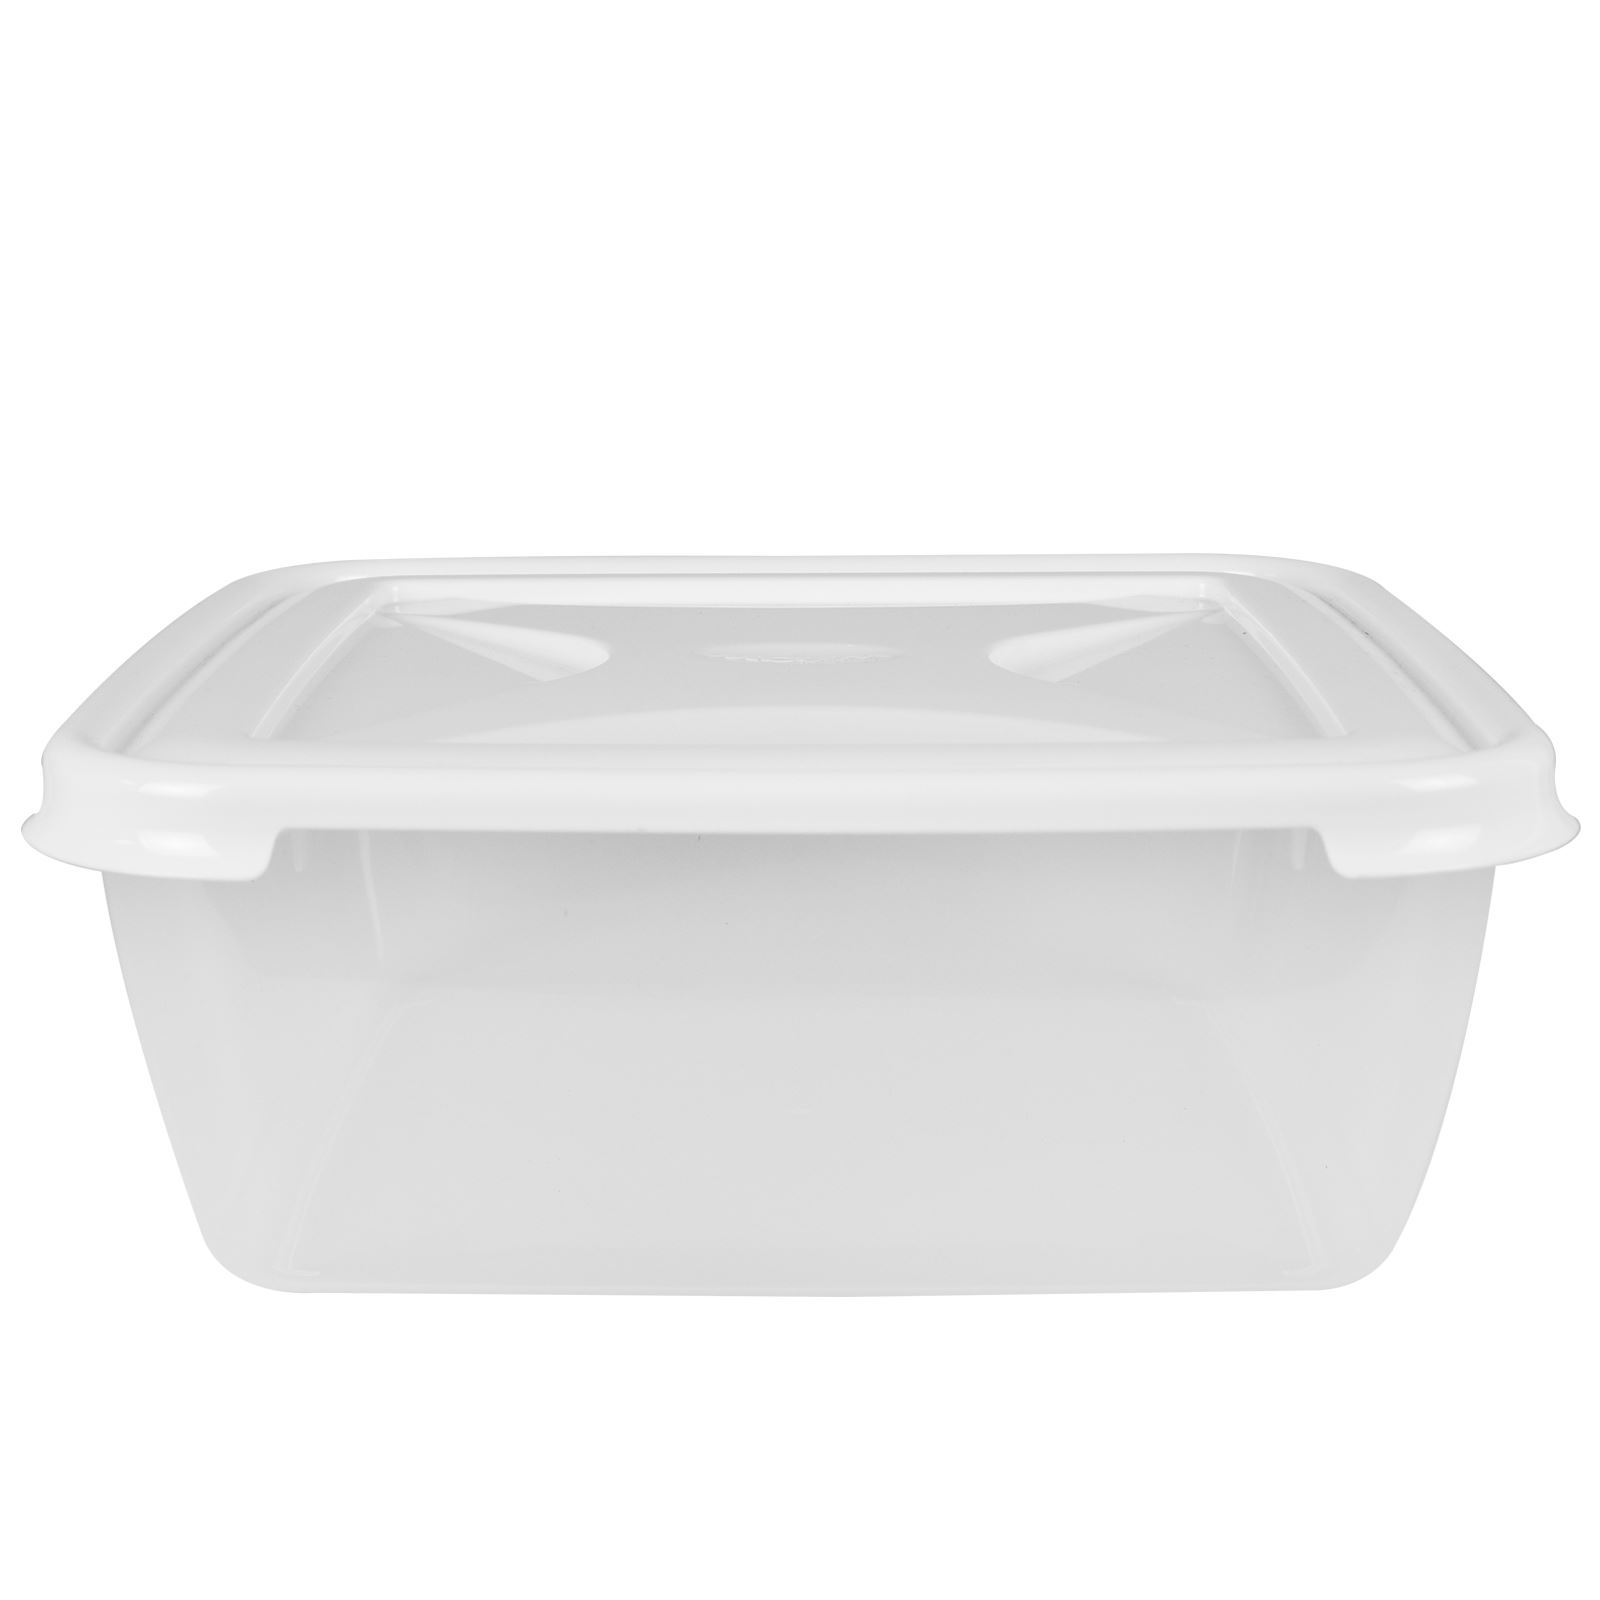 Wham-Plastic-Food-Storage-Shelf-Box-Stackable-Containers-Clear-Secure-Clip-Lid thumbnail 6